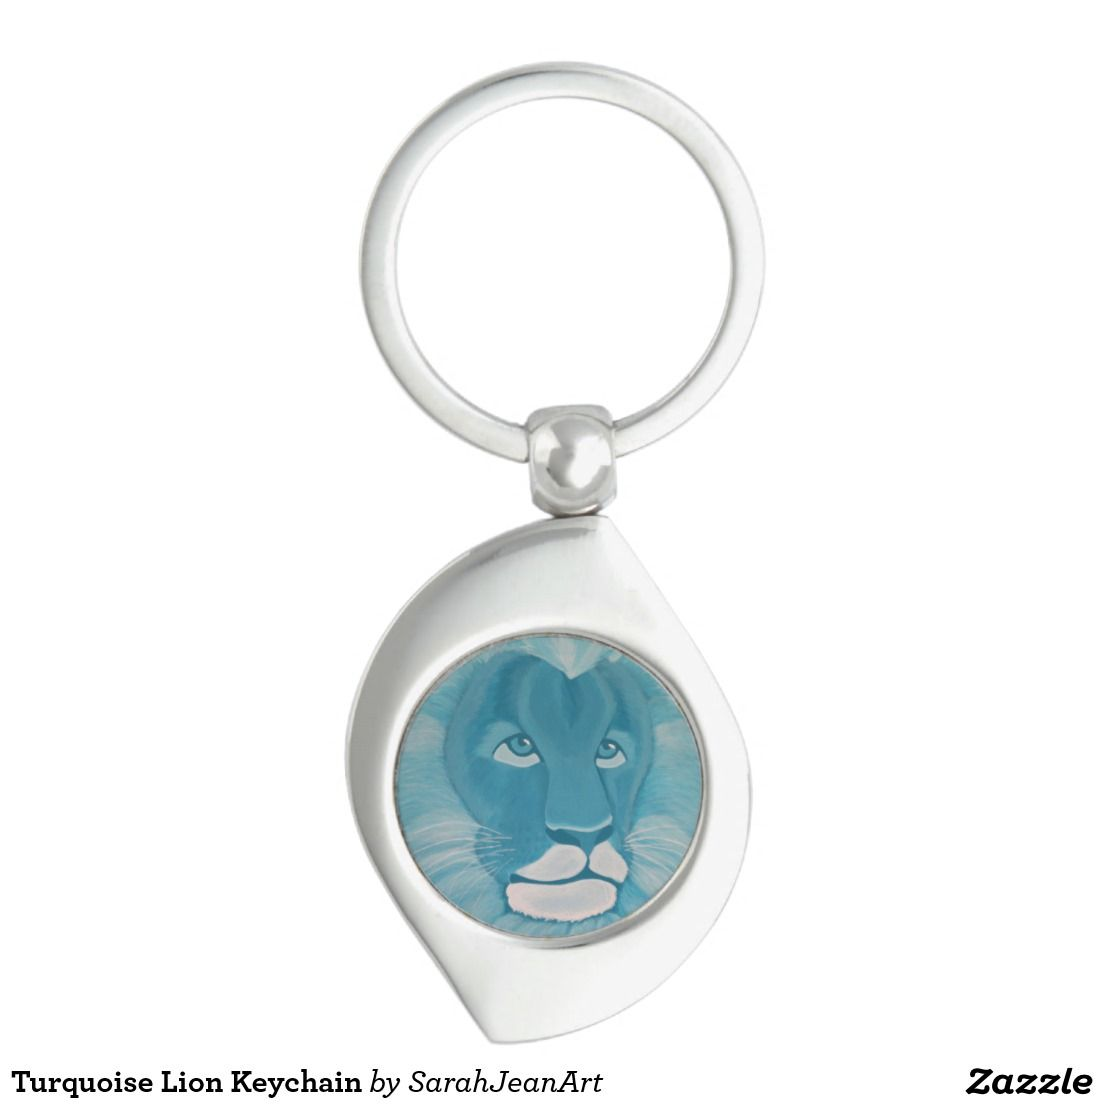 Turquoise Lion Keychain